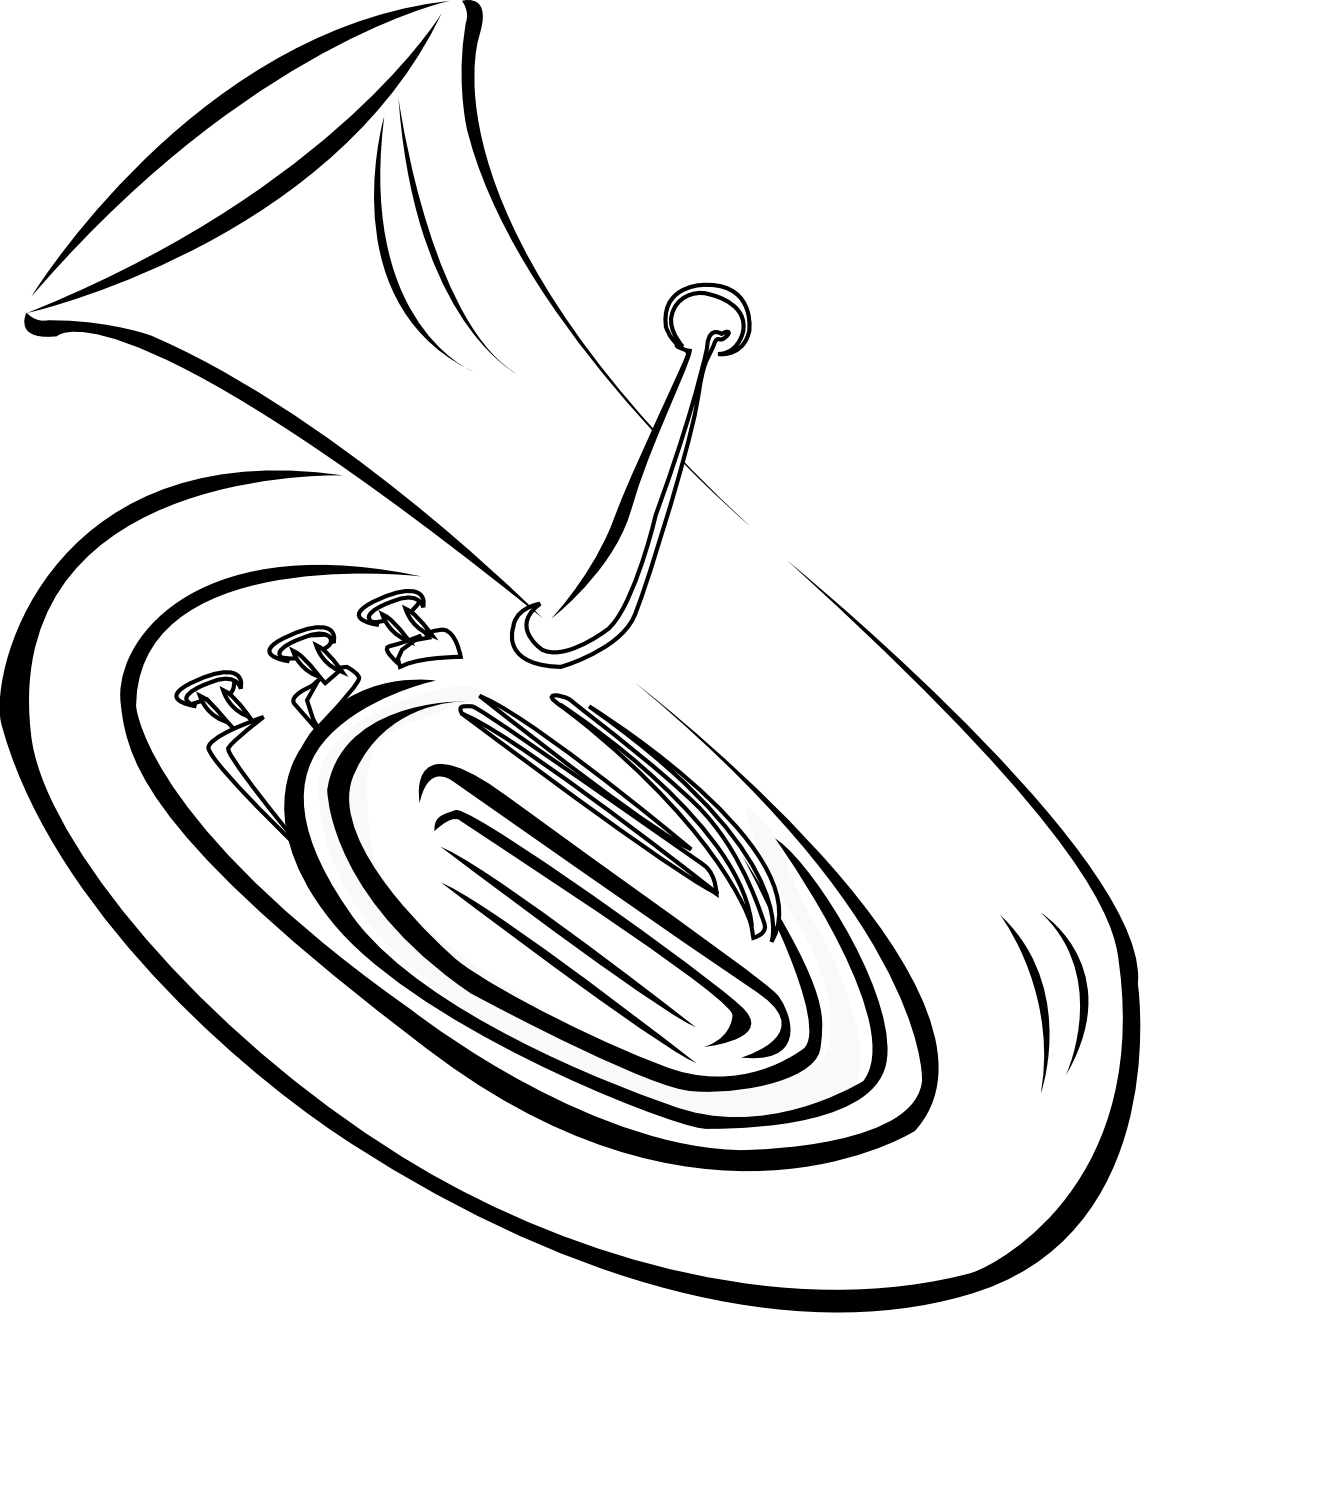 Tuba clipart free images 4